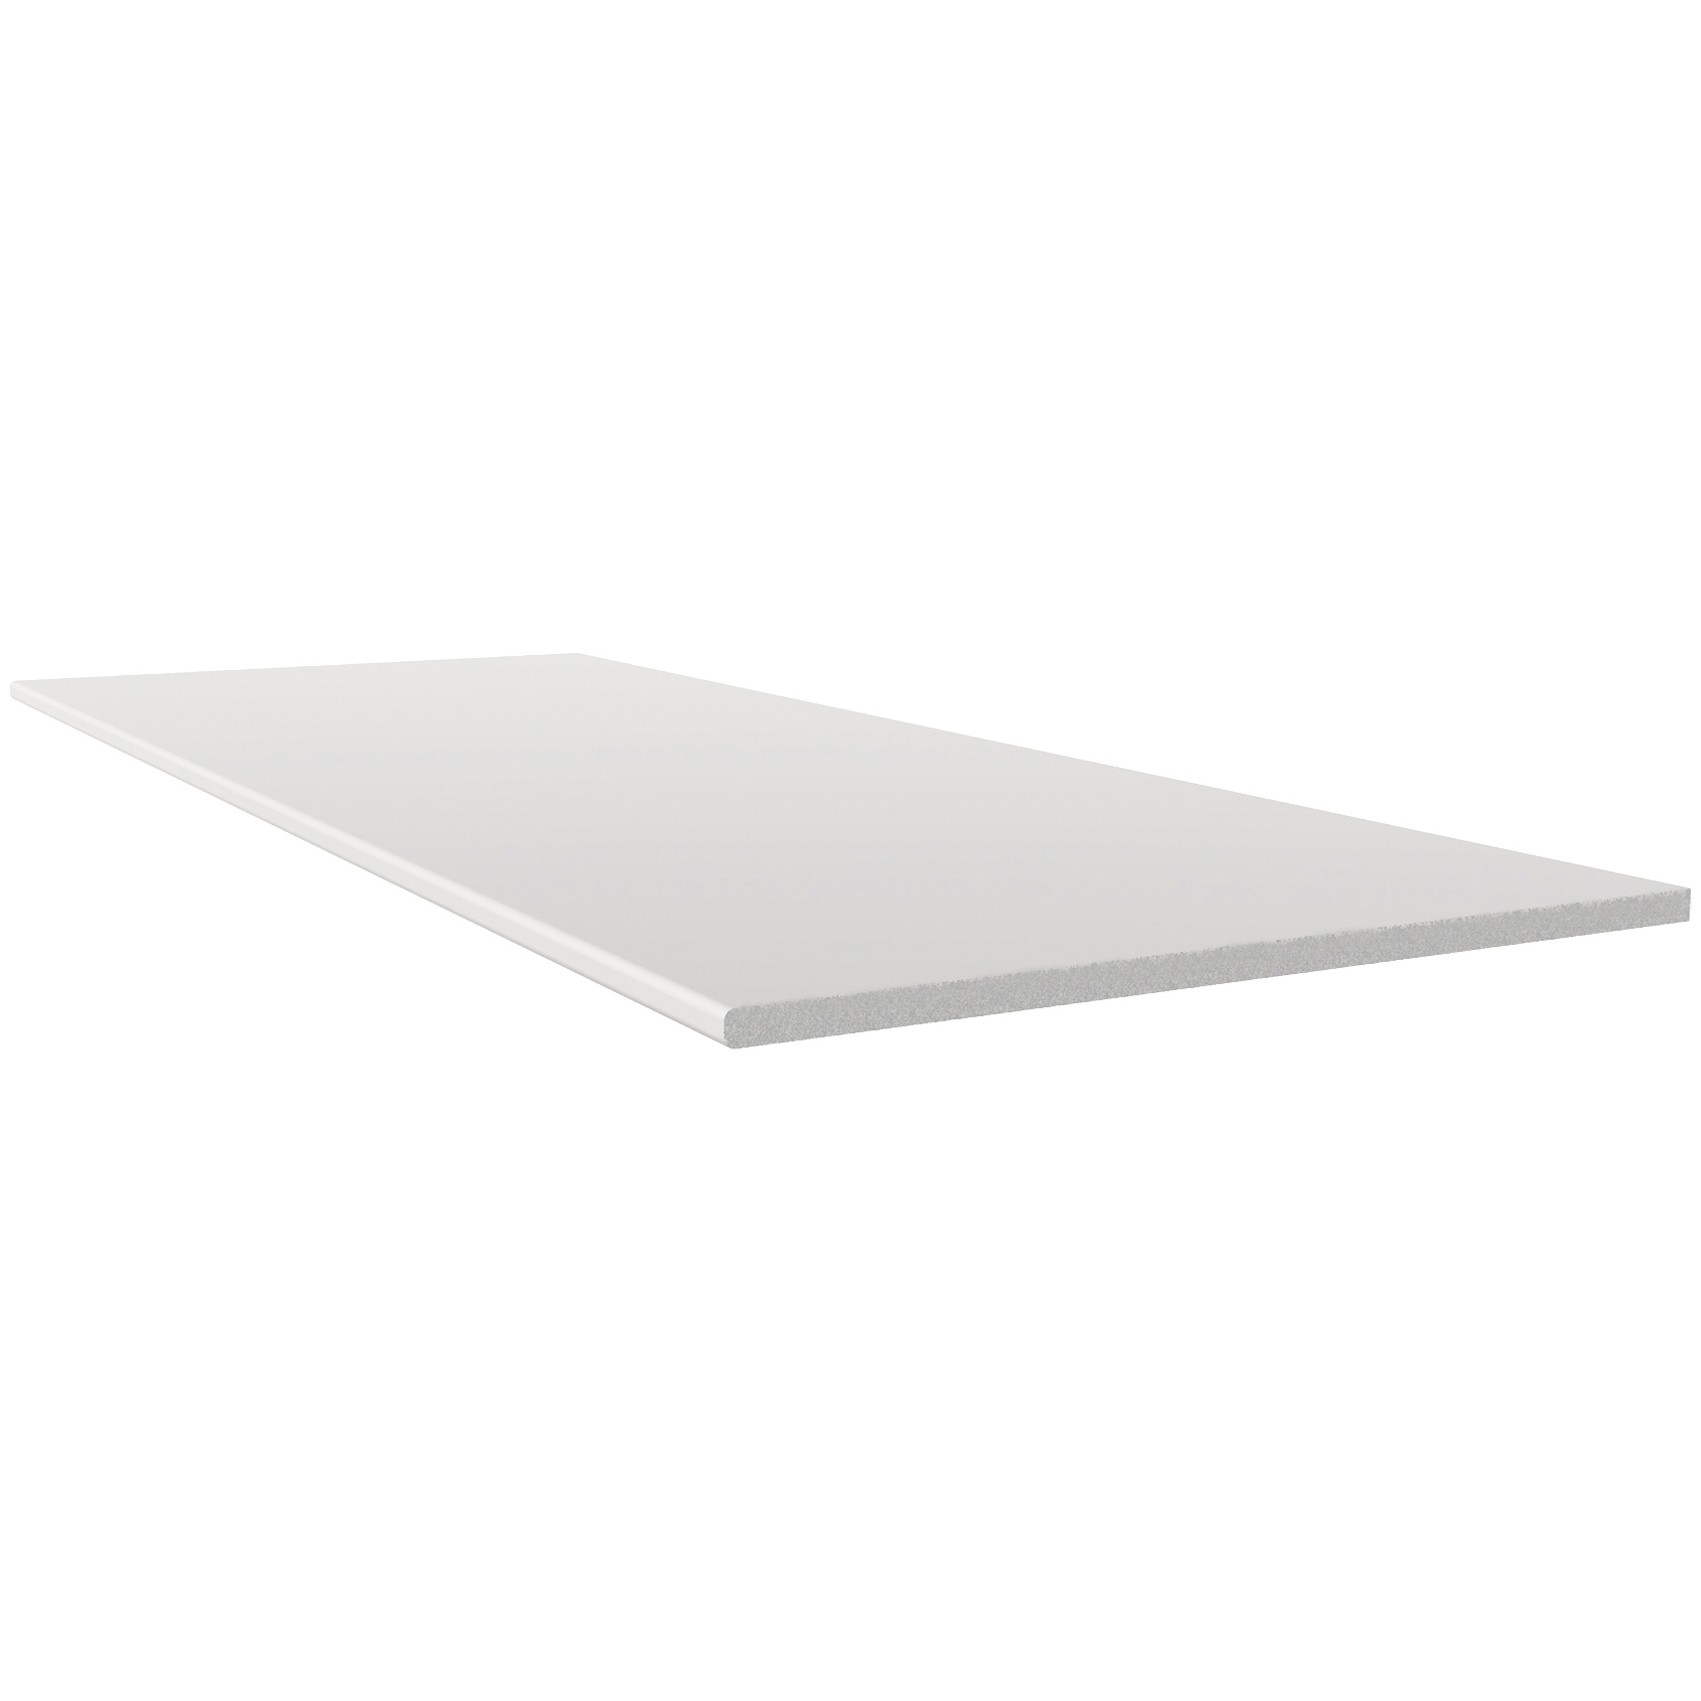 Freefoam 10mm Solid Soffit Board - White, 300mm, 5 metre